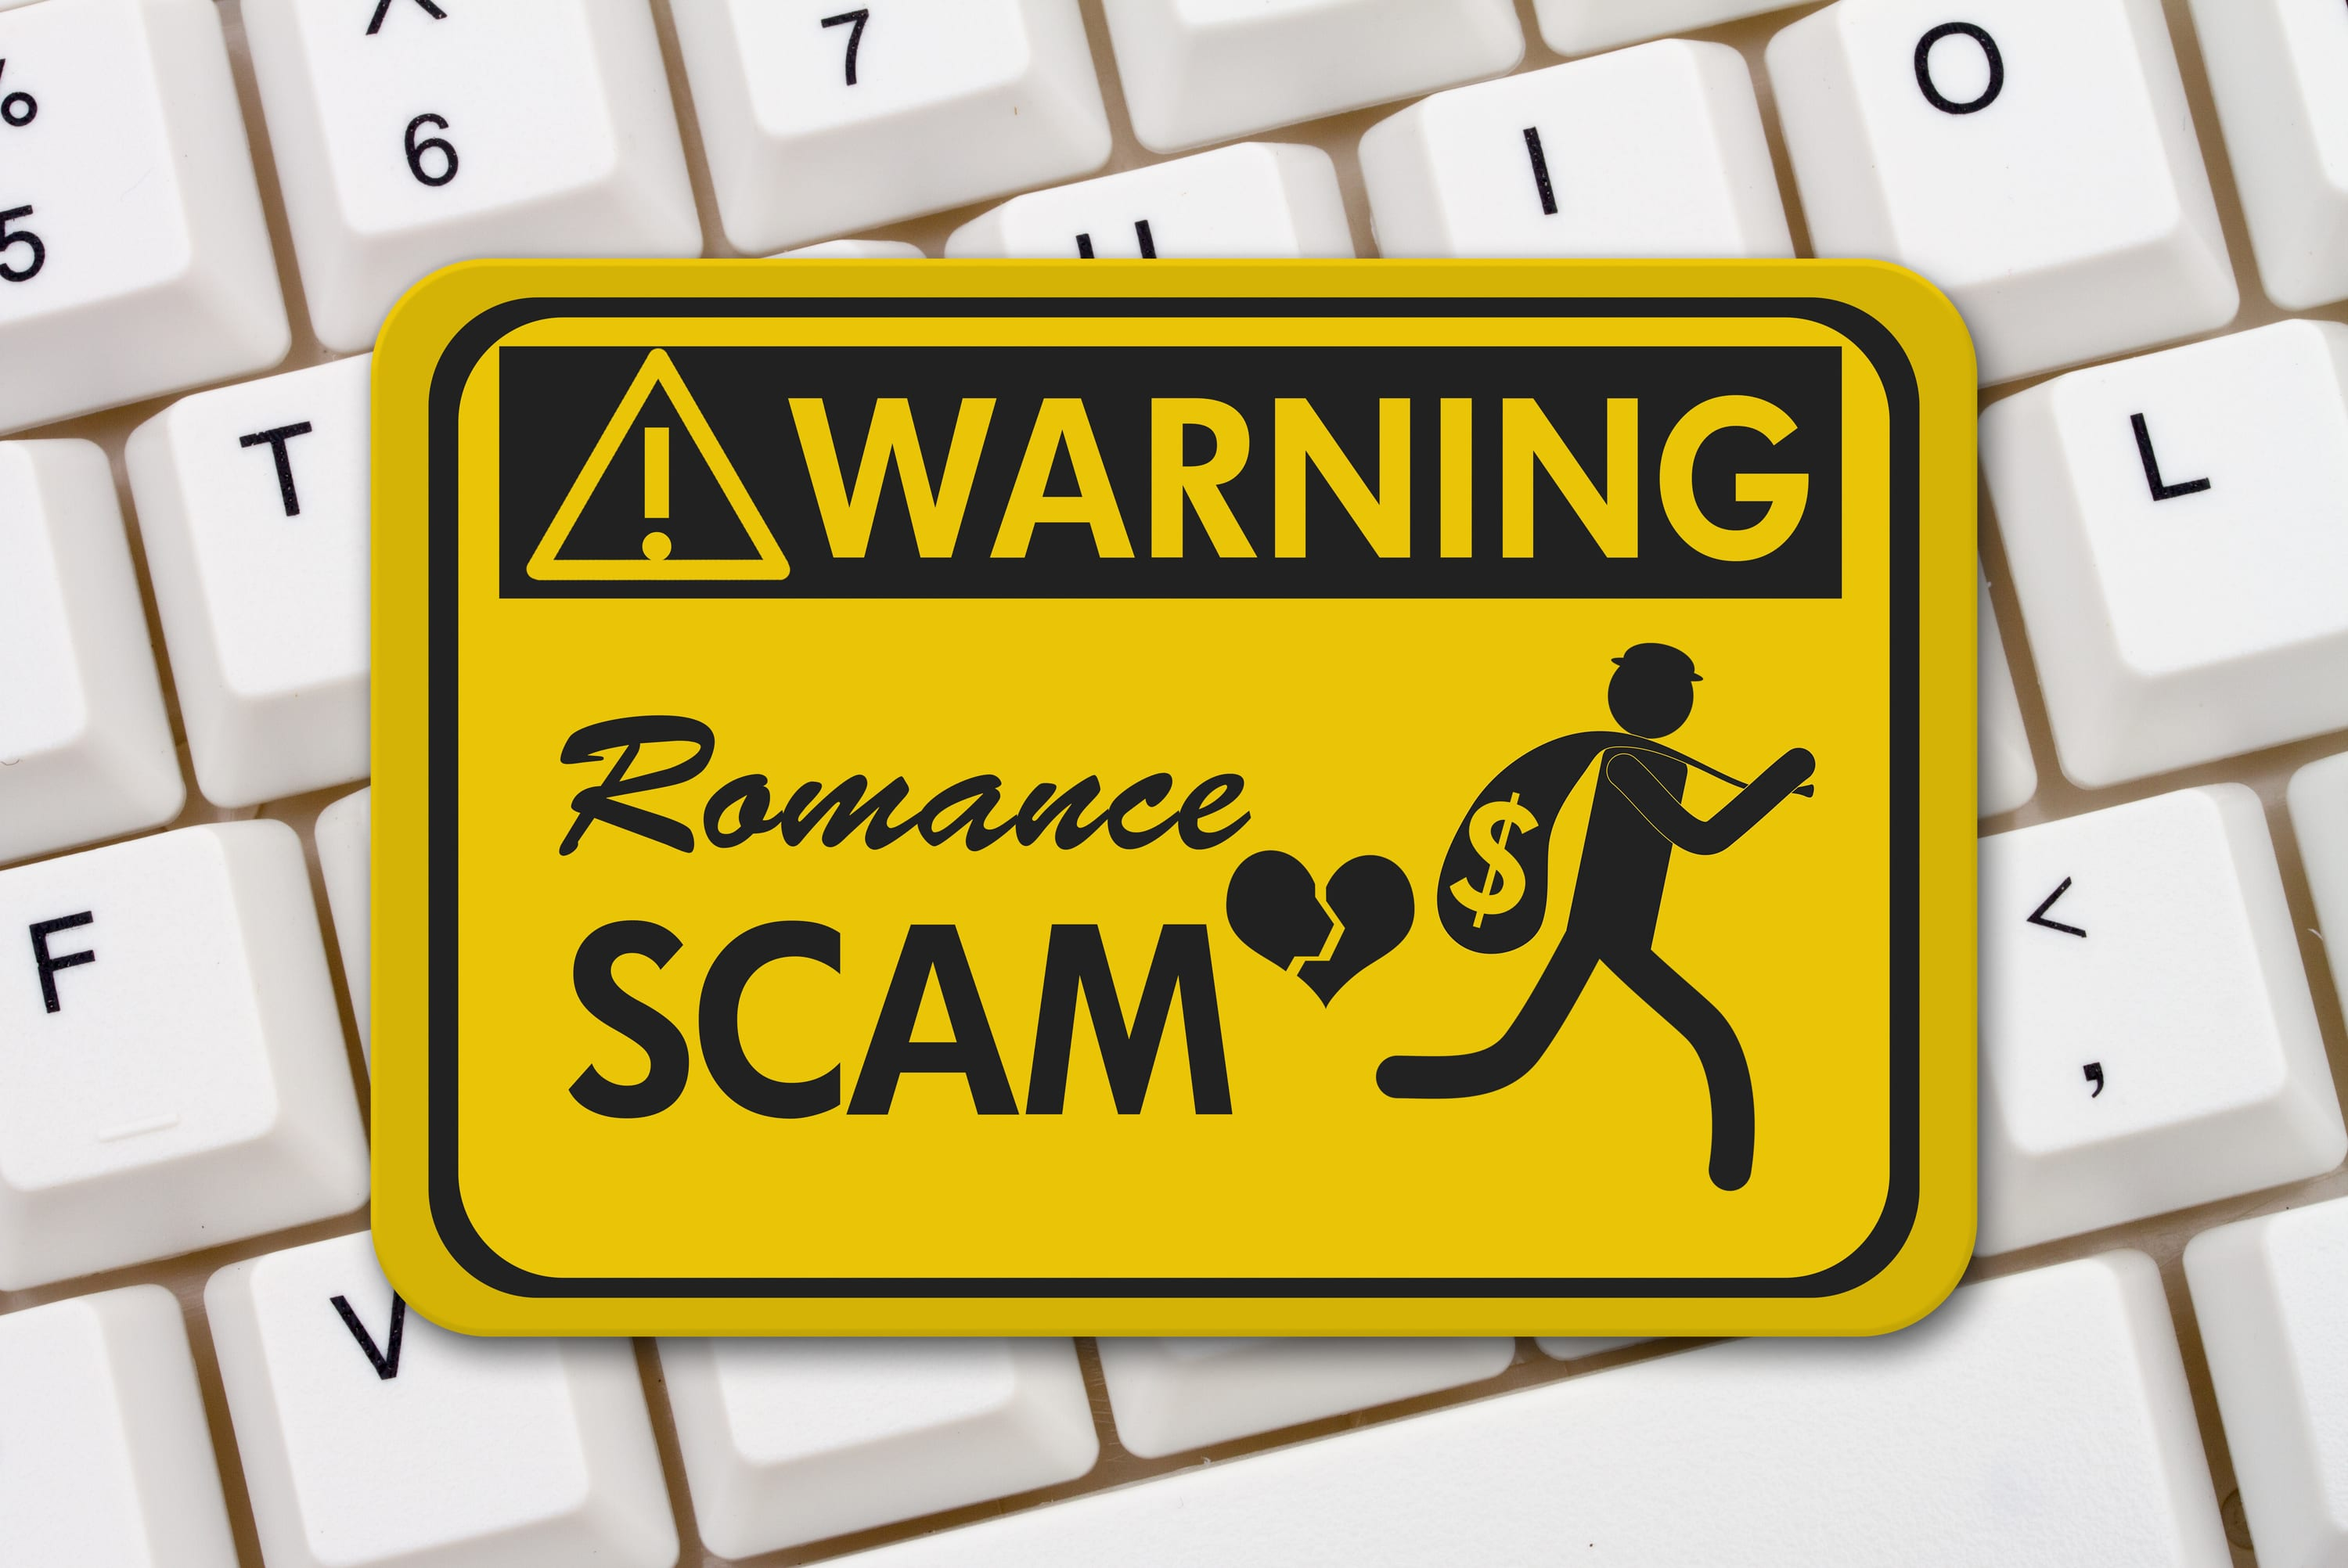 My two week virtual affair with an online romance scammer aka pandemic entertainment